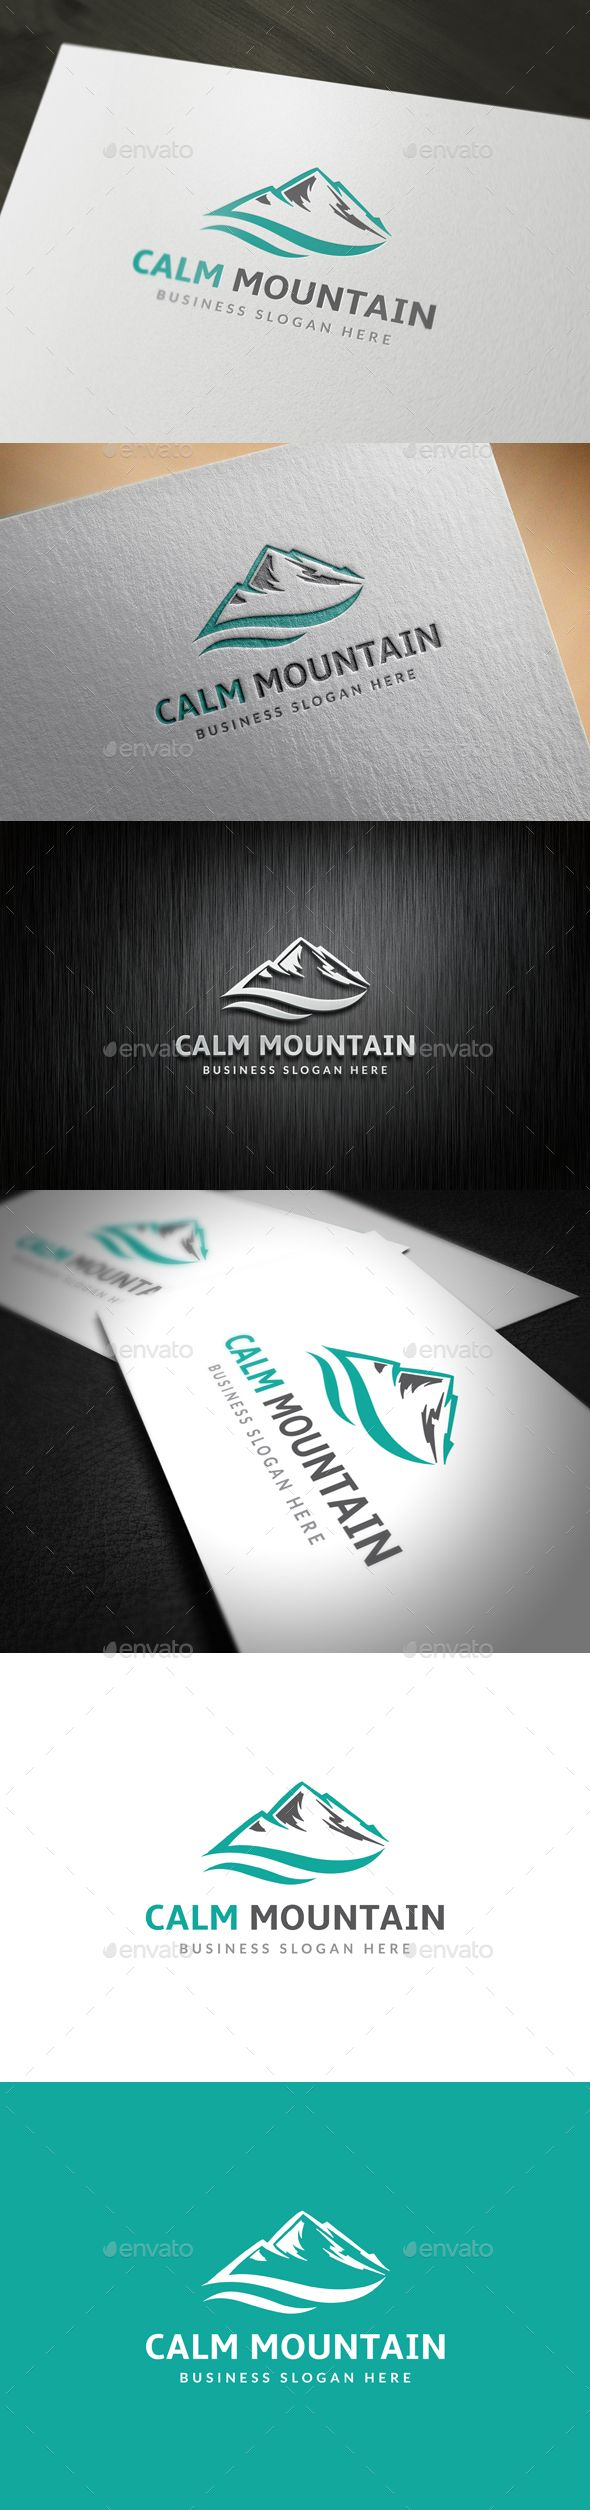 Mountain Logo Template PSD, Vector EPS, AI Illustrator #logotype Download here: http://graphicriver.net/item/mountain-logo/14122547?ref=ksioks